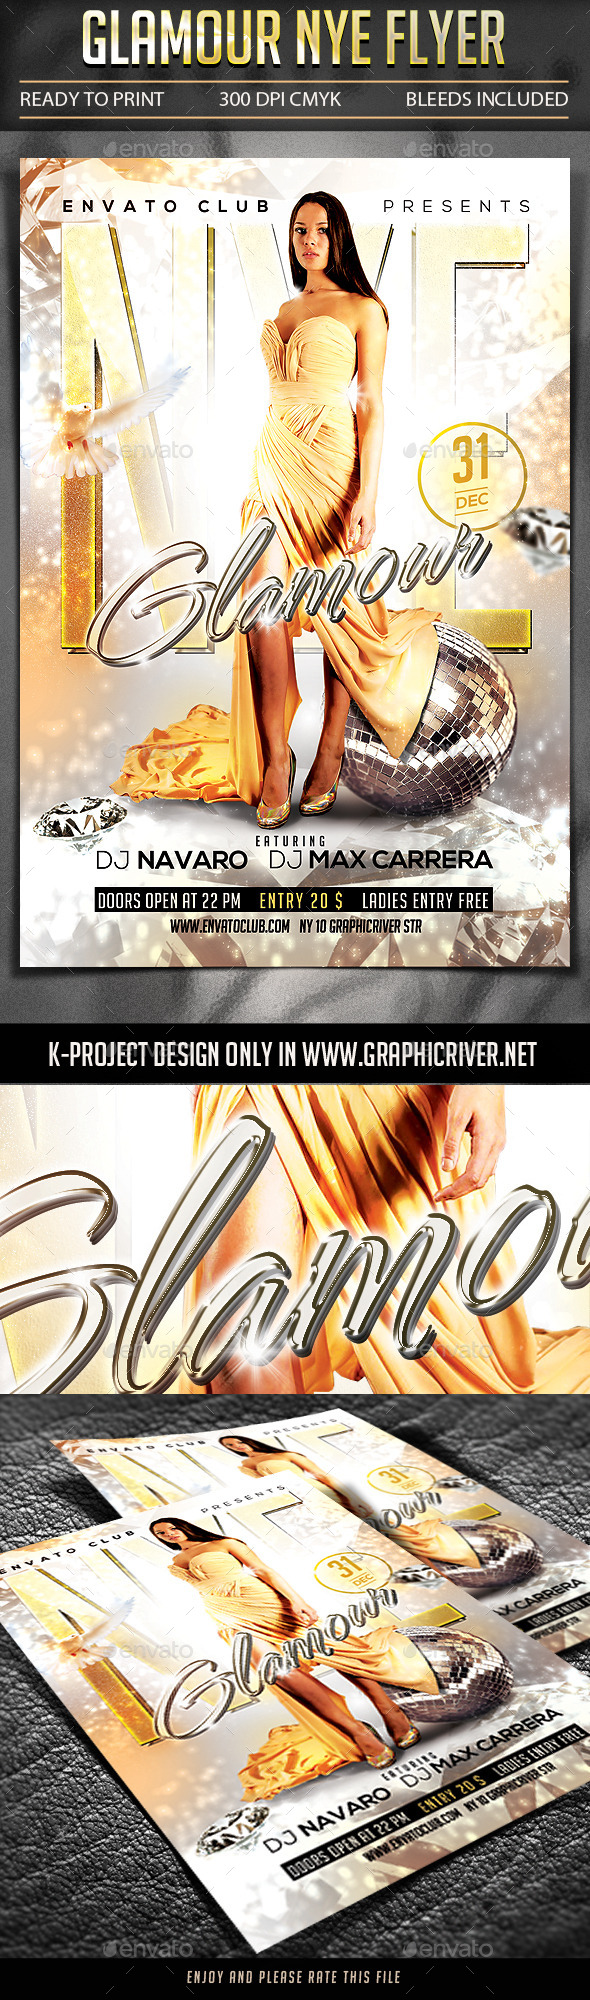 GraphicRiver Glamour NYE Flyer 9735940